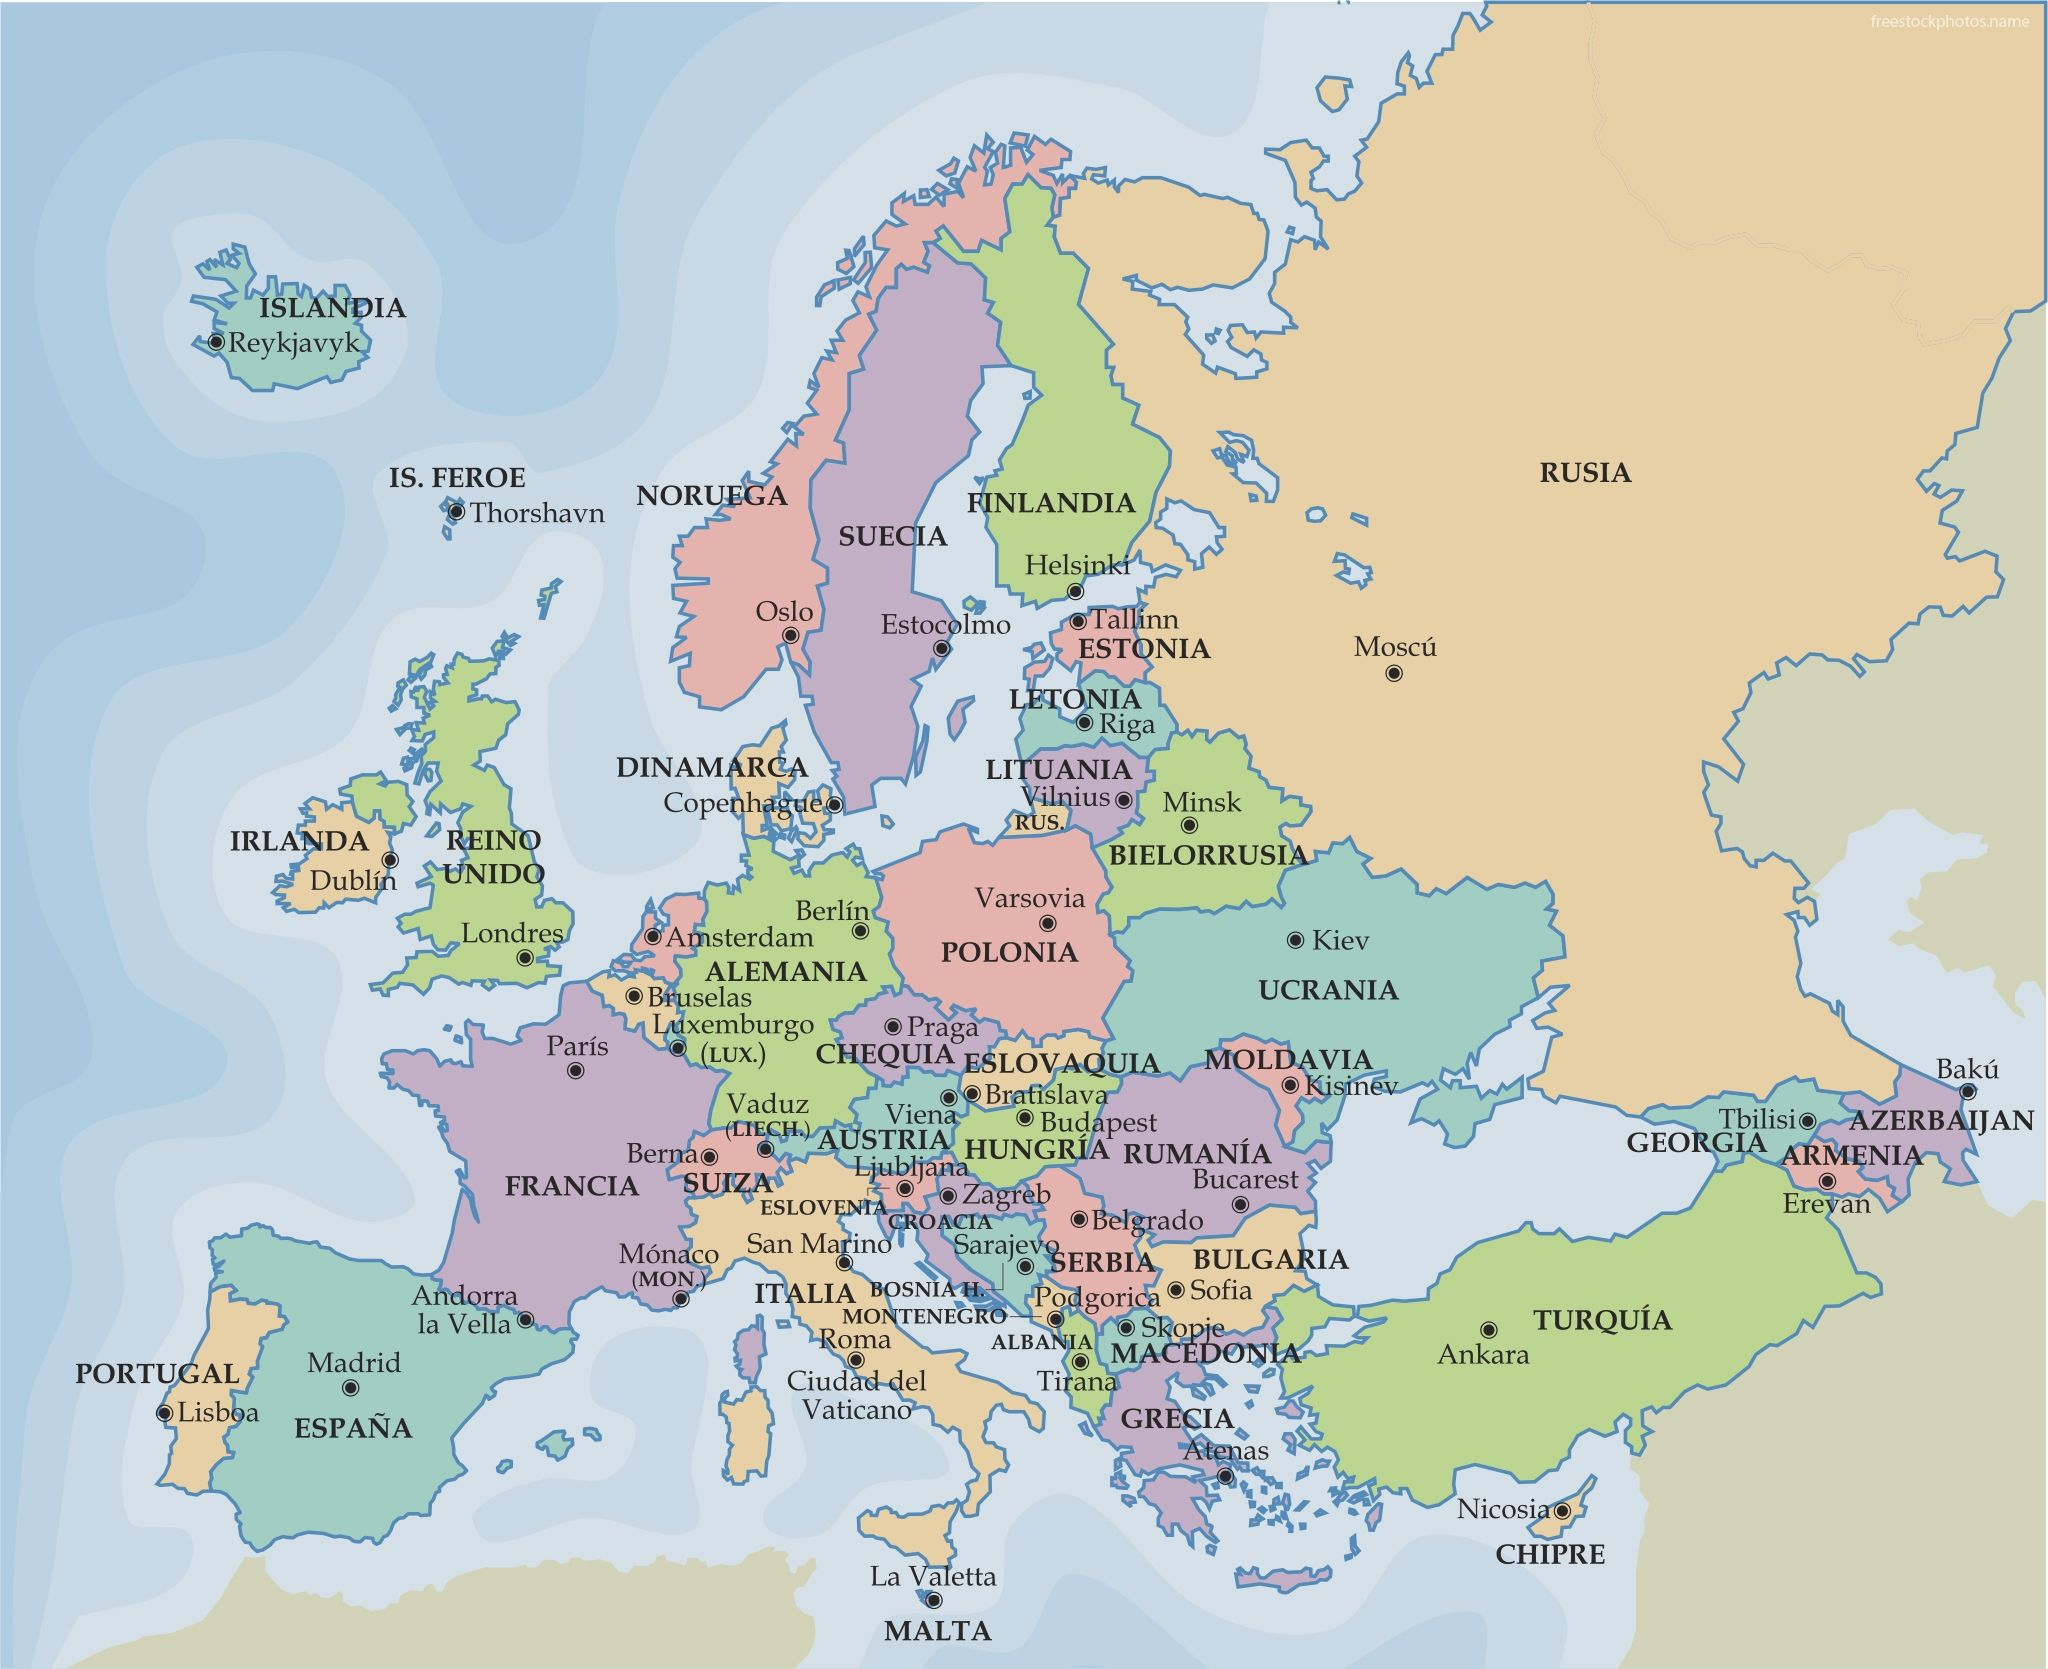 Europe Map Hd Wallpapers Top Free Europe Map Hd Backgrounds Wallpaperaccess